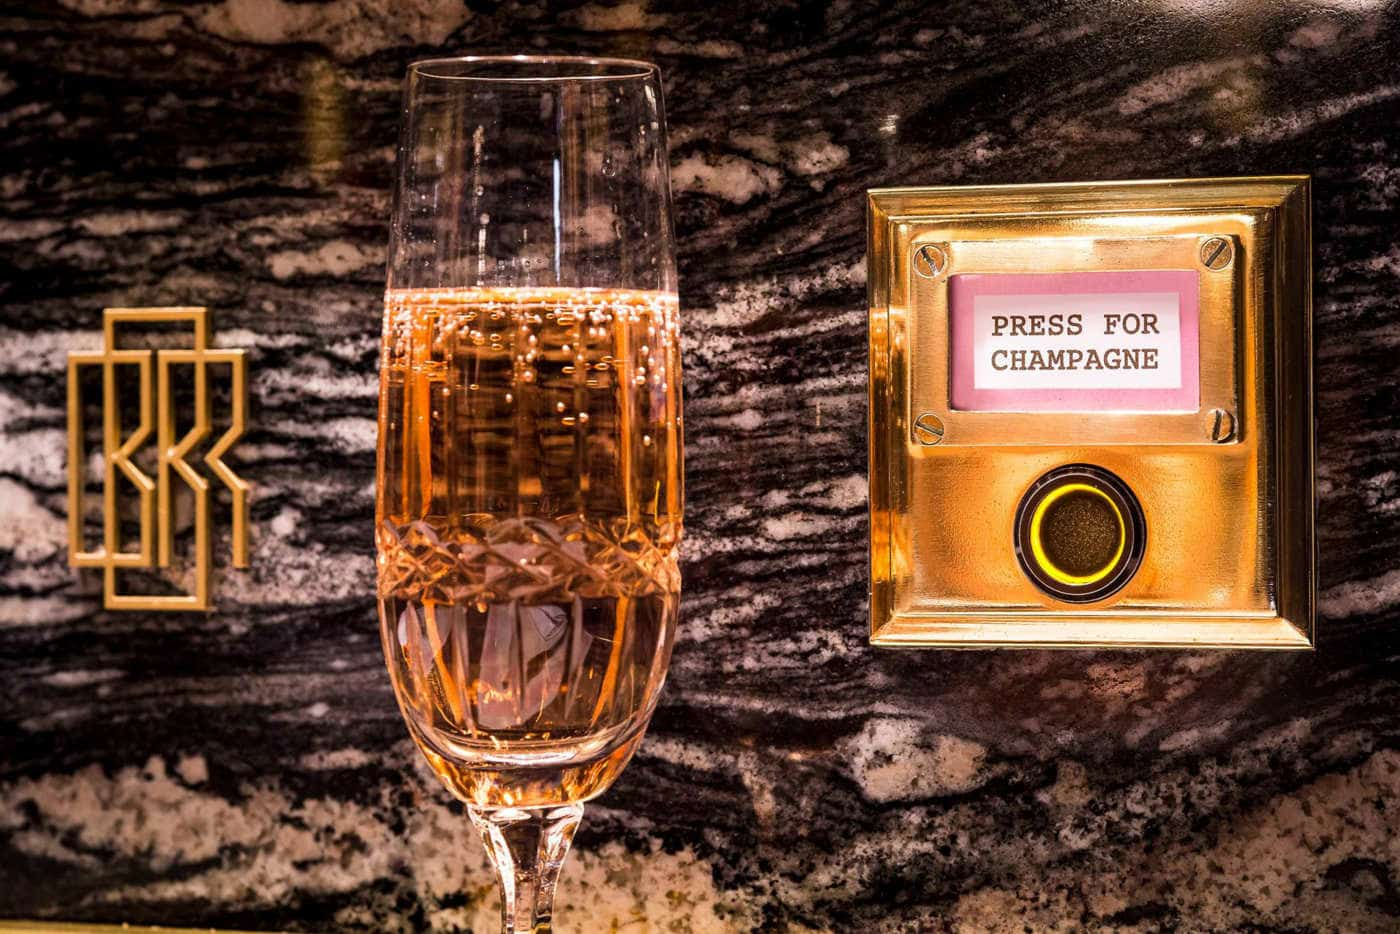 Press For Champagne (Photo: Bob Bob Ricard)